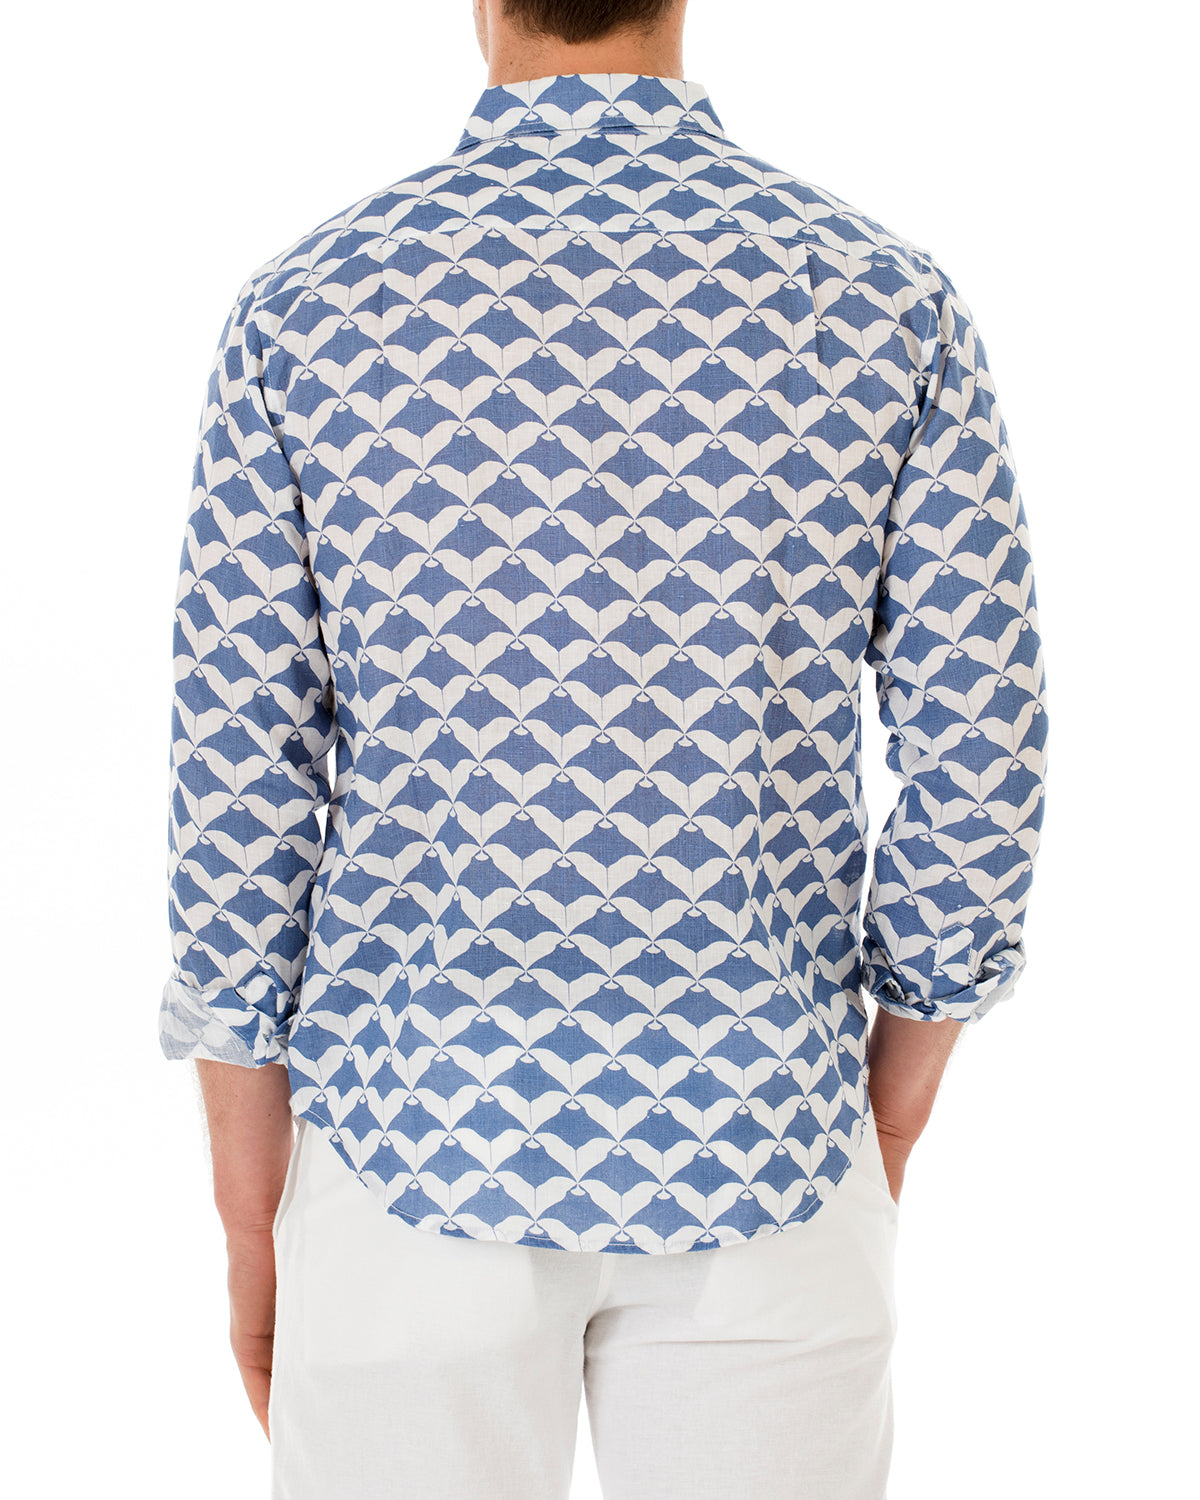 Mens Linen Shirt : MANTA RAY - NAVY back